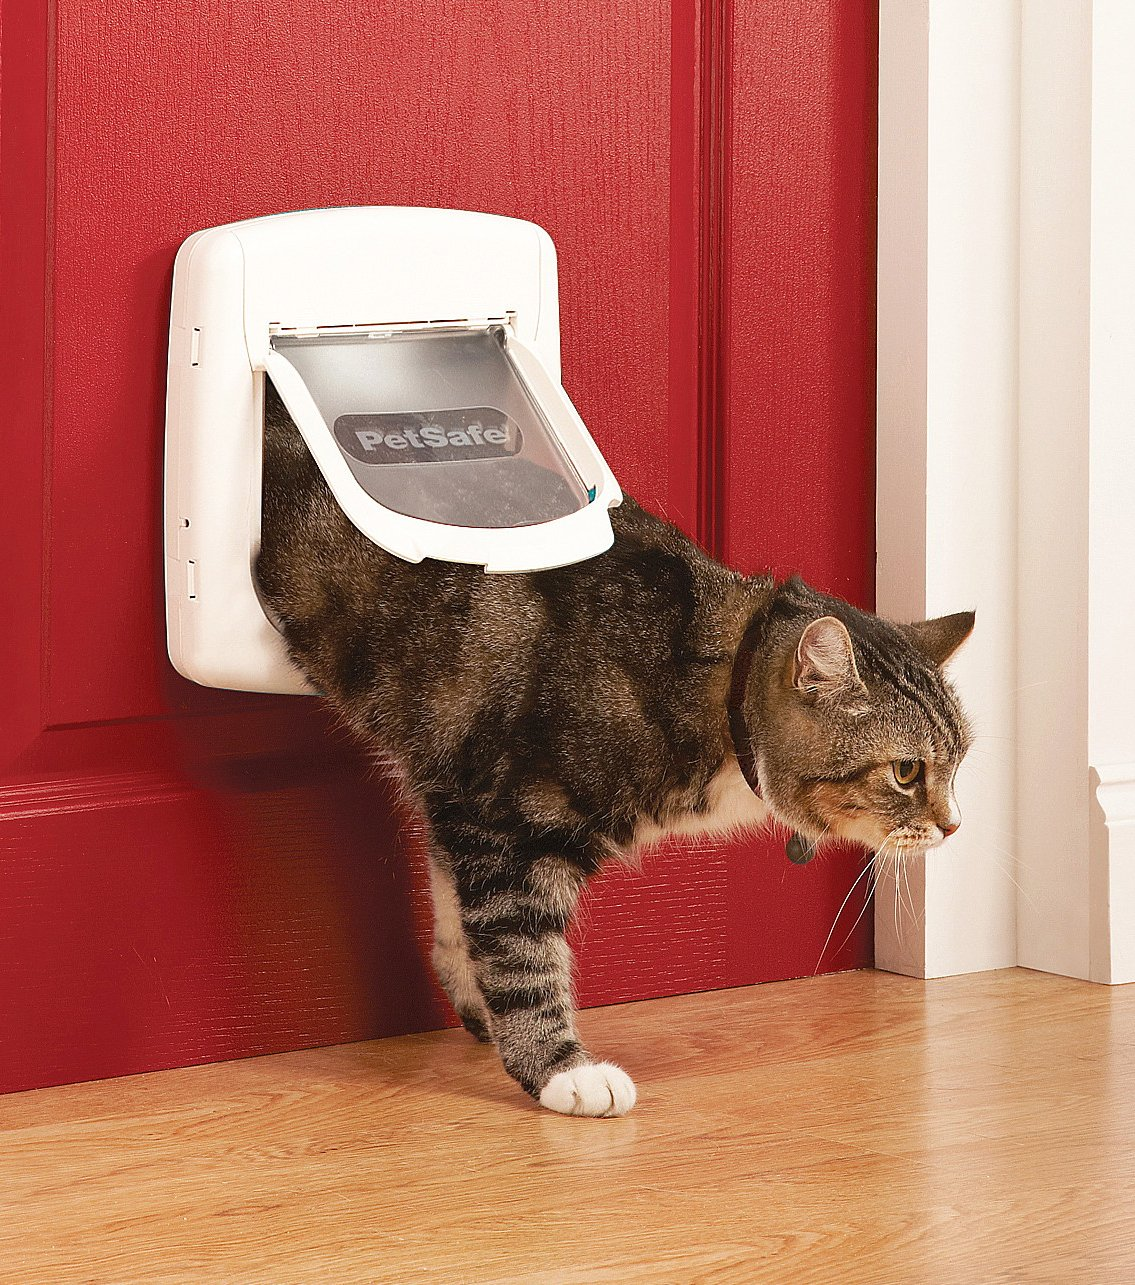 Shows cat with collar magnet using a white cat flap